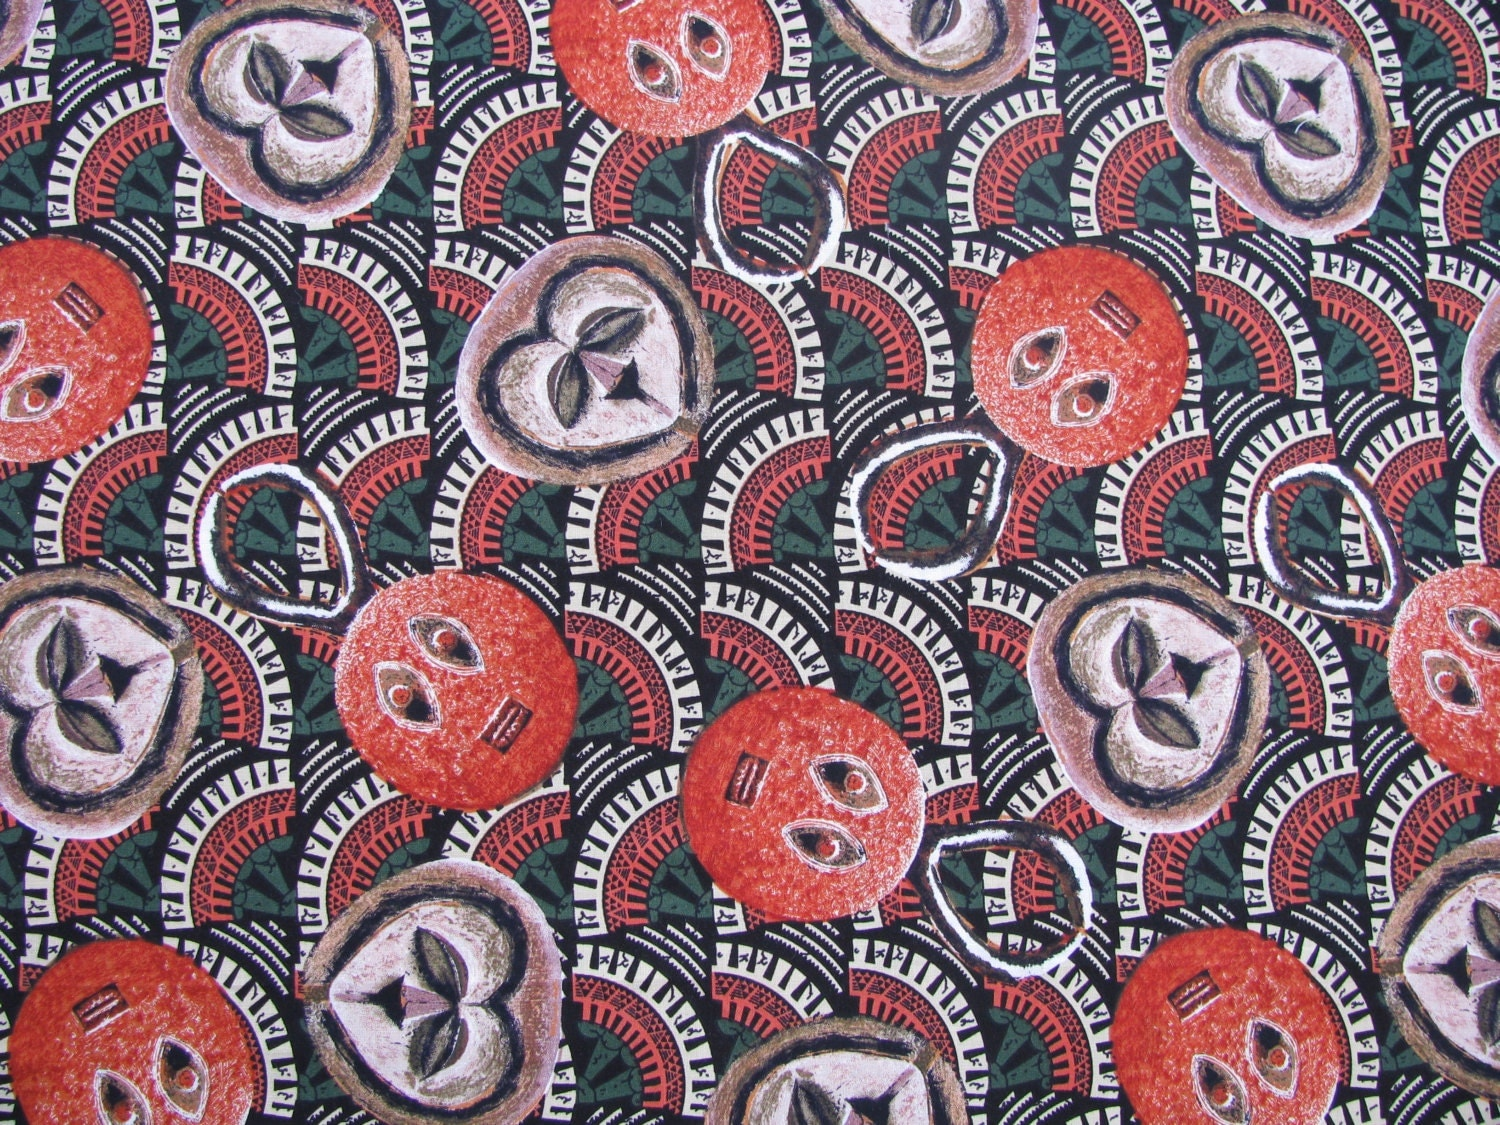 Sale african masks cotton fabric 1 yard by for Fabric for sale by the yard